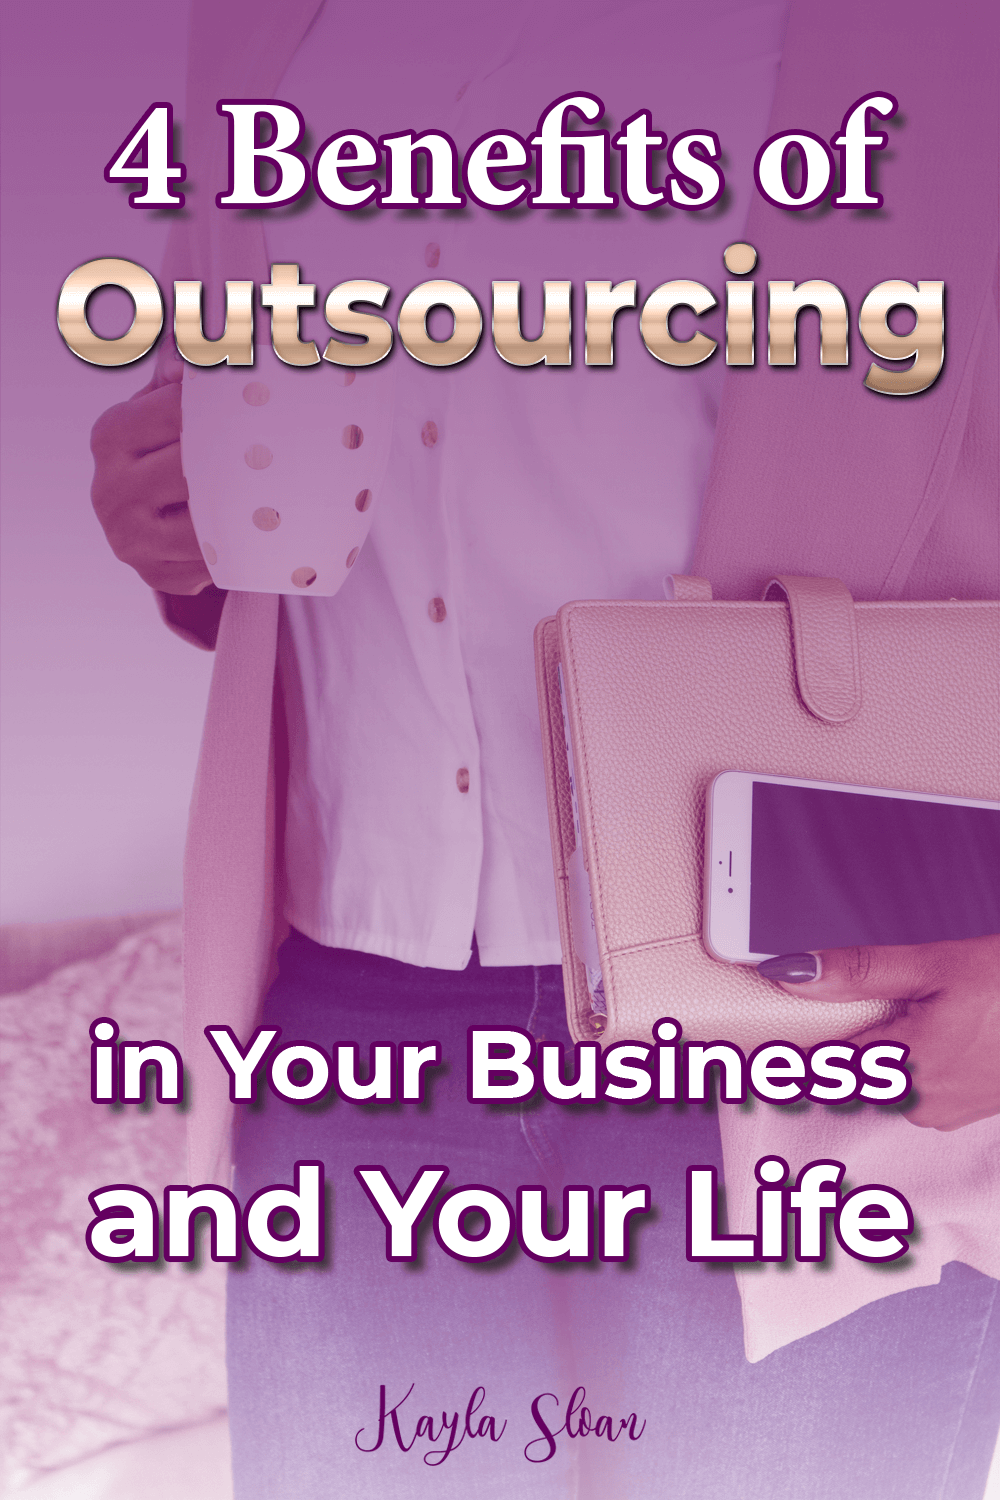 4 Benefits of Outsourcing Tasks in Your Business (and Your Life)